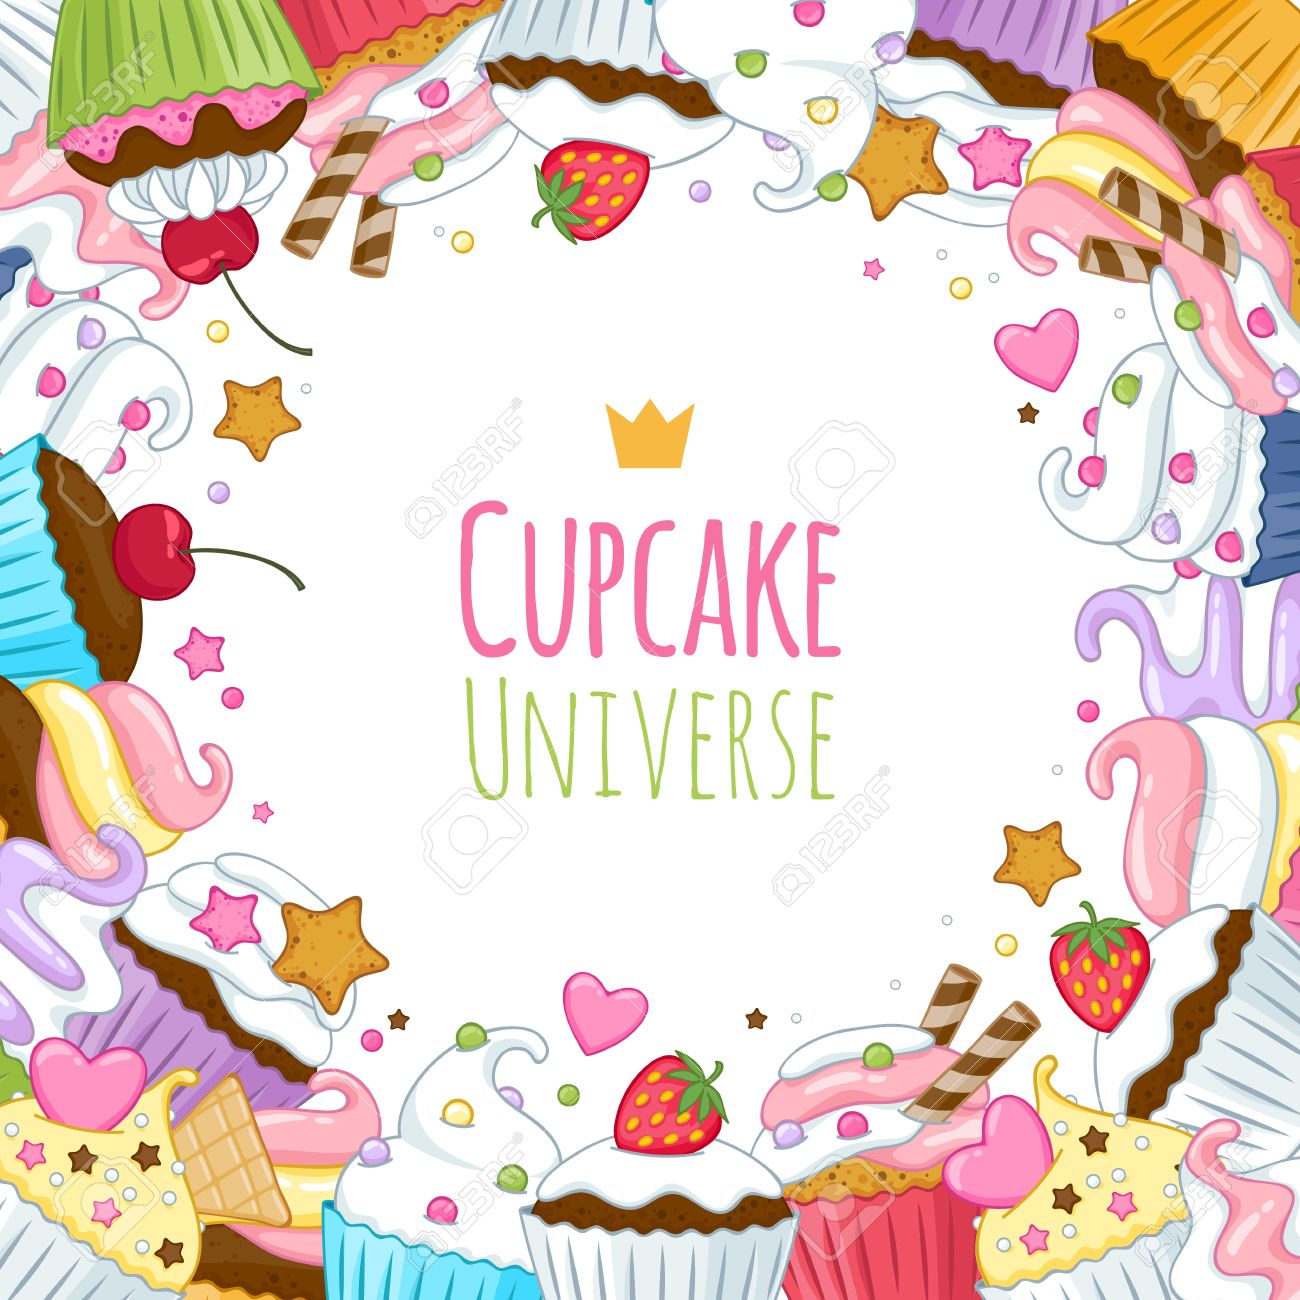 Sweet Cupcakes Background Colorful Illustration Good For Menu 1300x1300